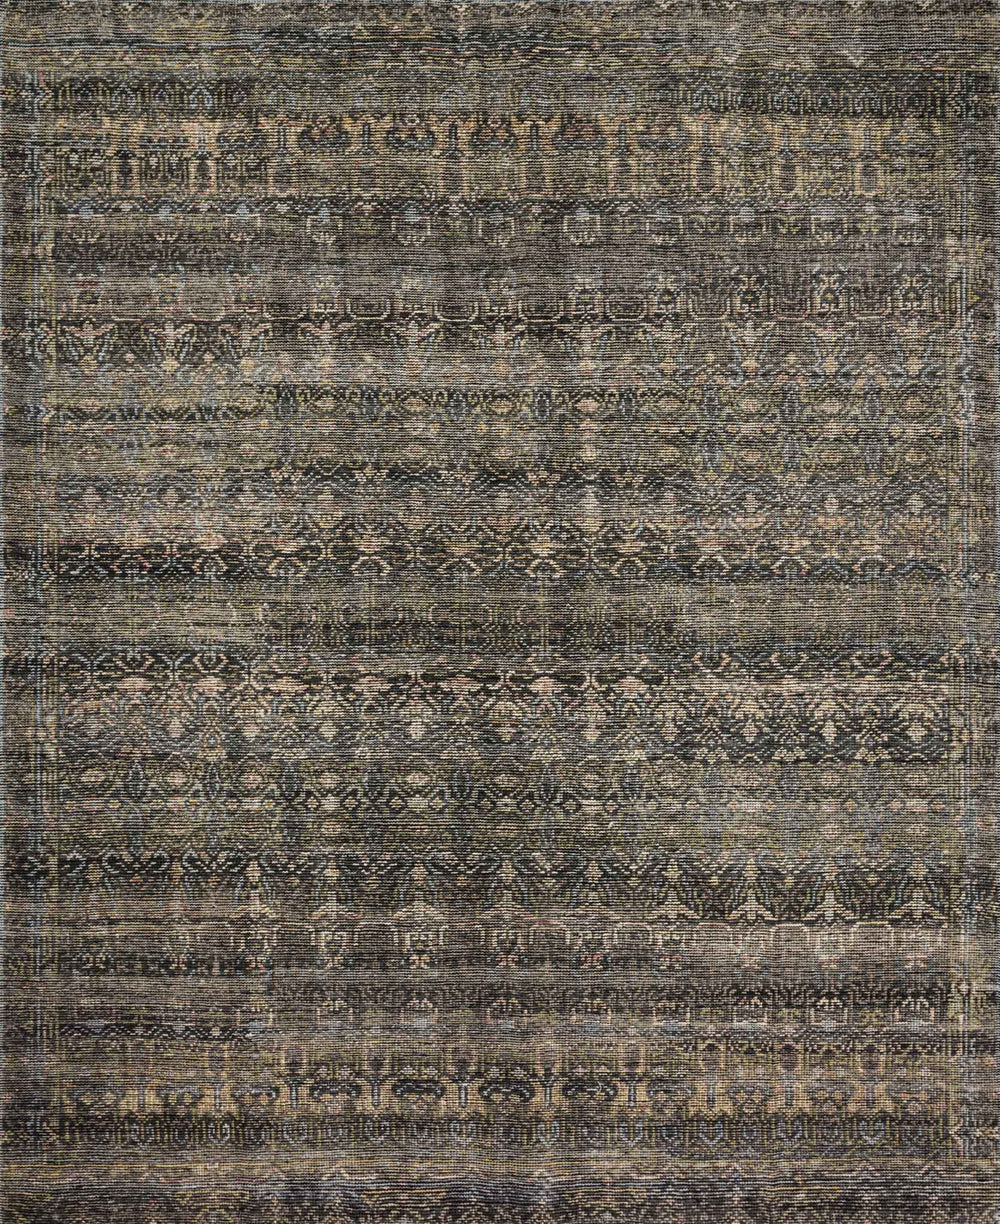 Hand-knotted in India of 100% wool, the Amara Collection creates a casual yet refined vibe with high-end appeal.  Hand Knotted 100% Wool India AMM-03 Charcoal/Lagoon